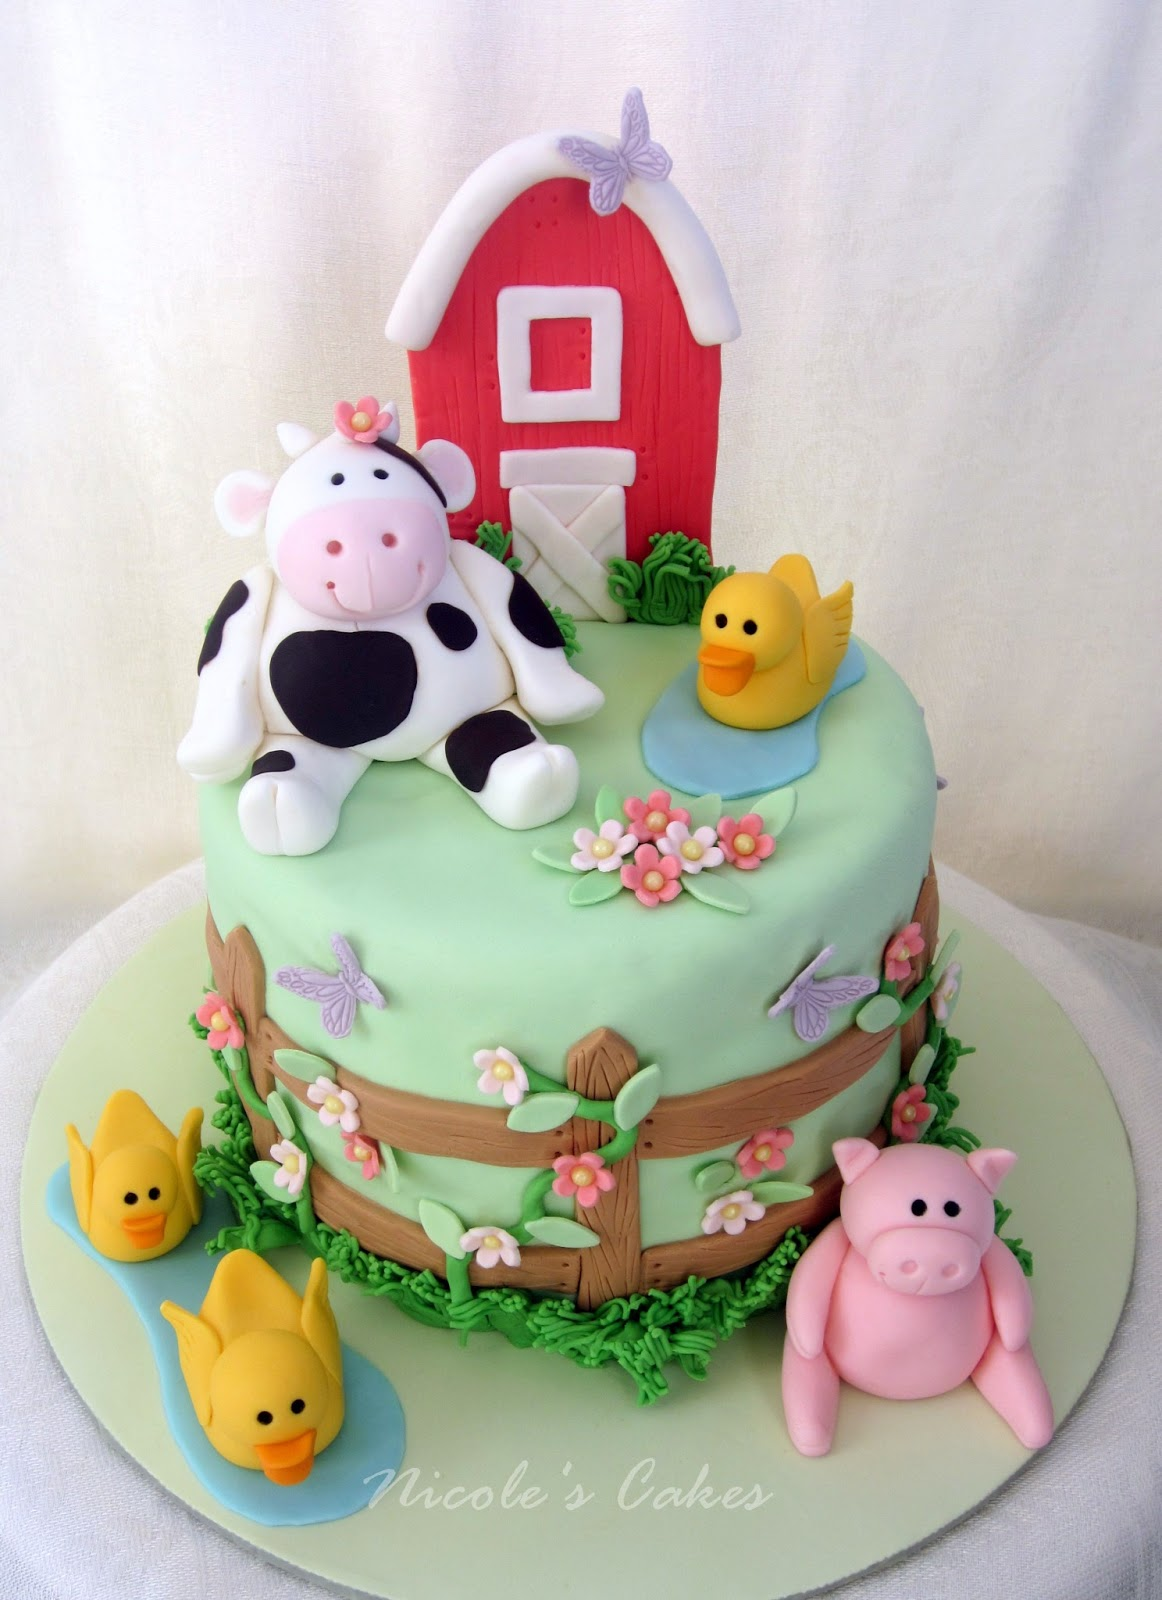 Confections Cakes Amp Creations Farm Themed Baby Shower Cake